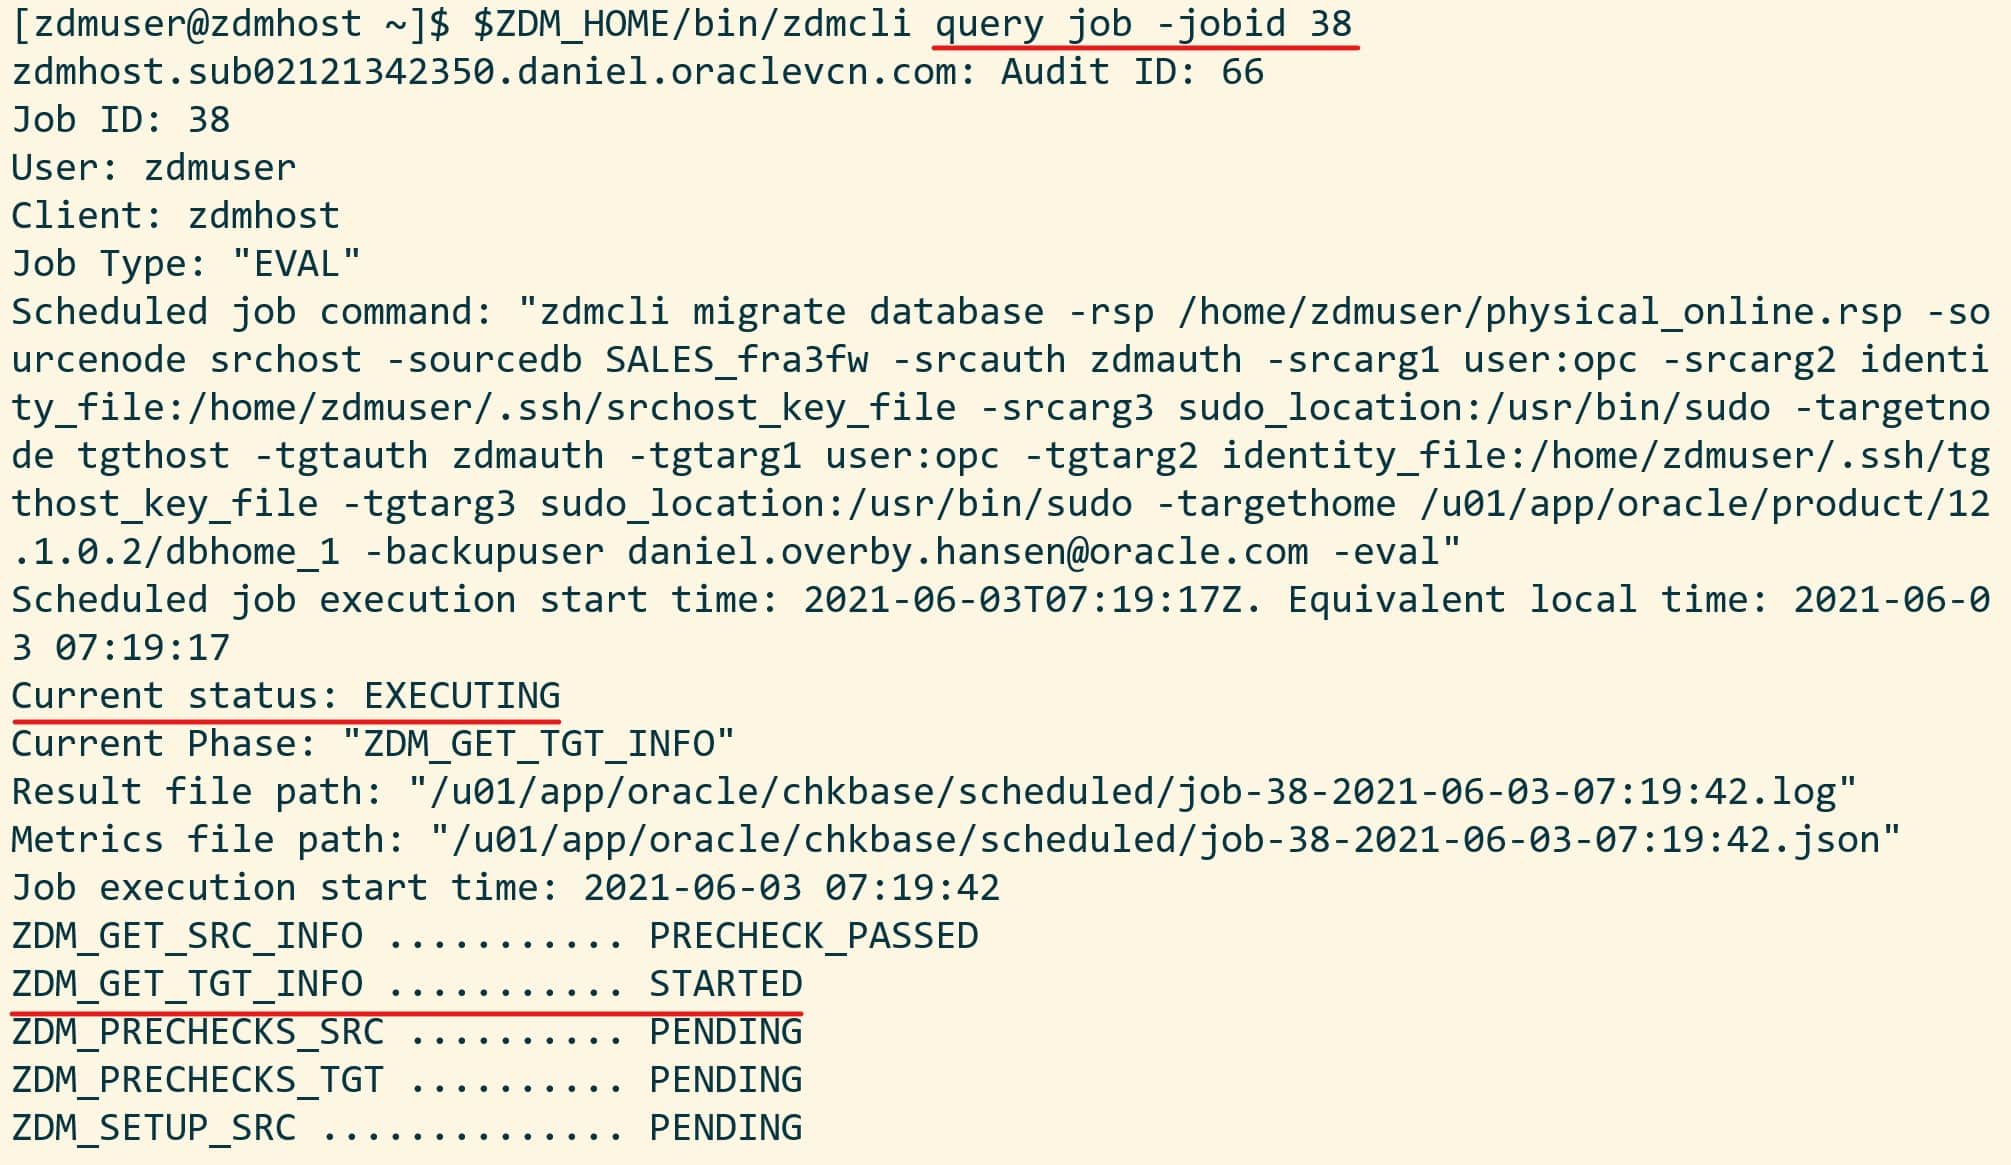 Output from zdmcli query job command